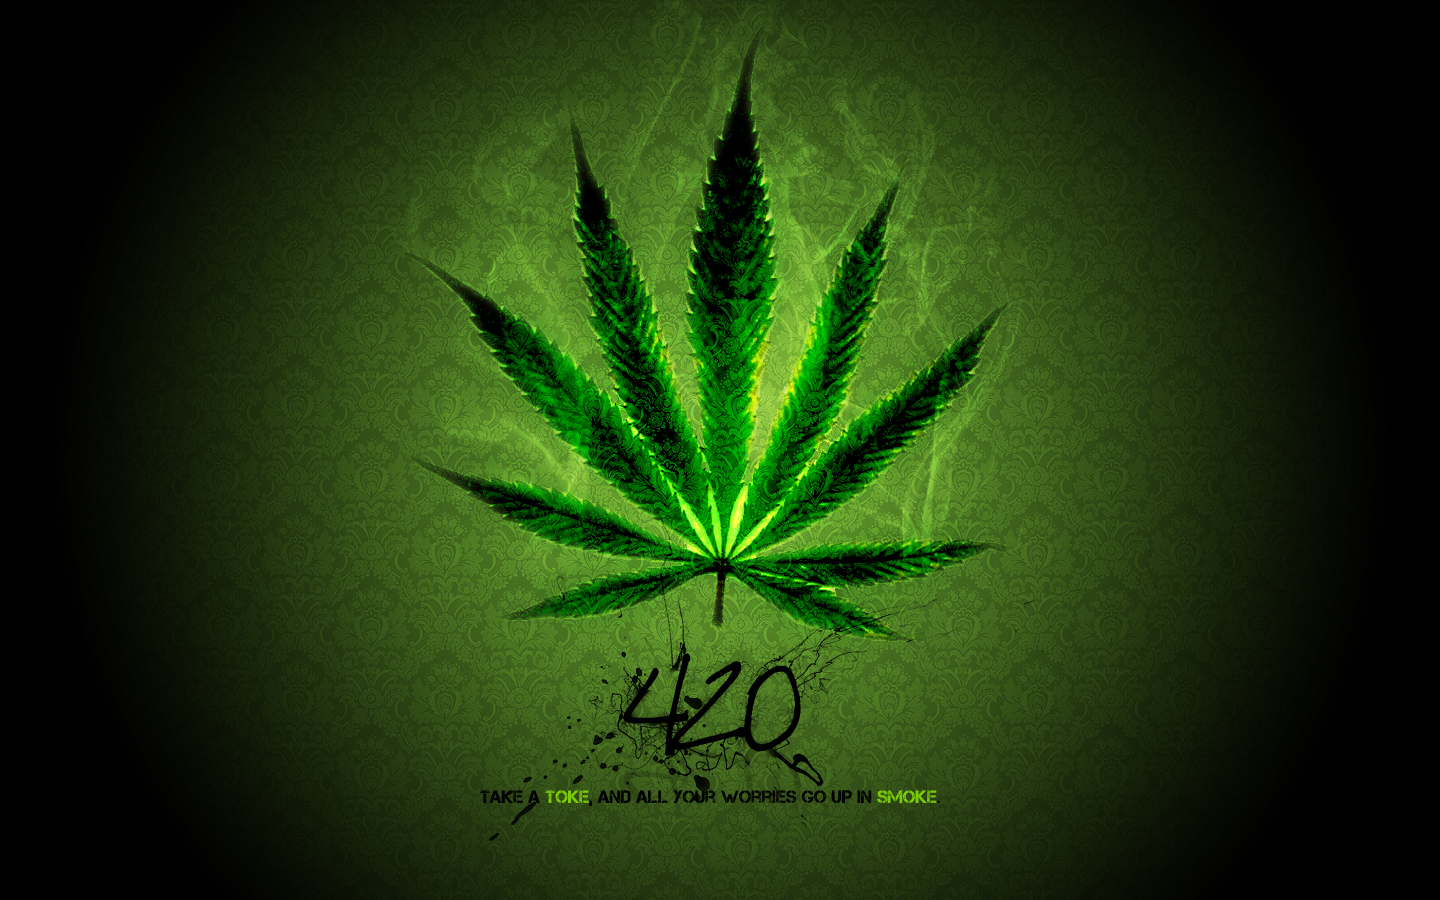 trololo blogg weed wallpaper hd